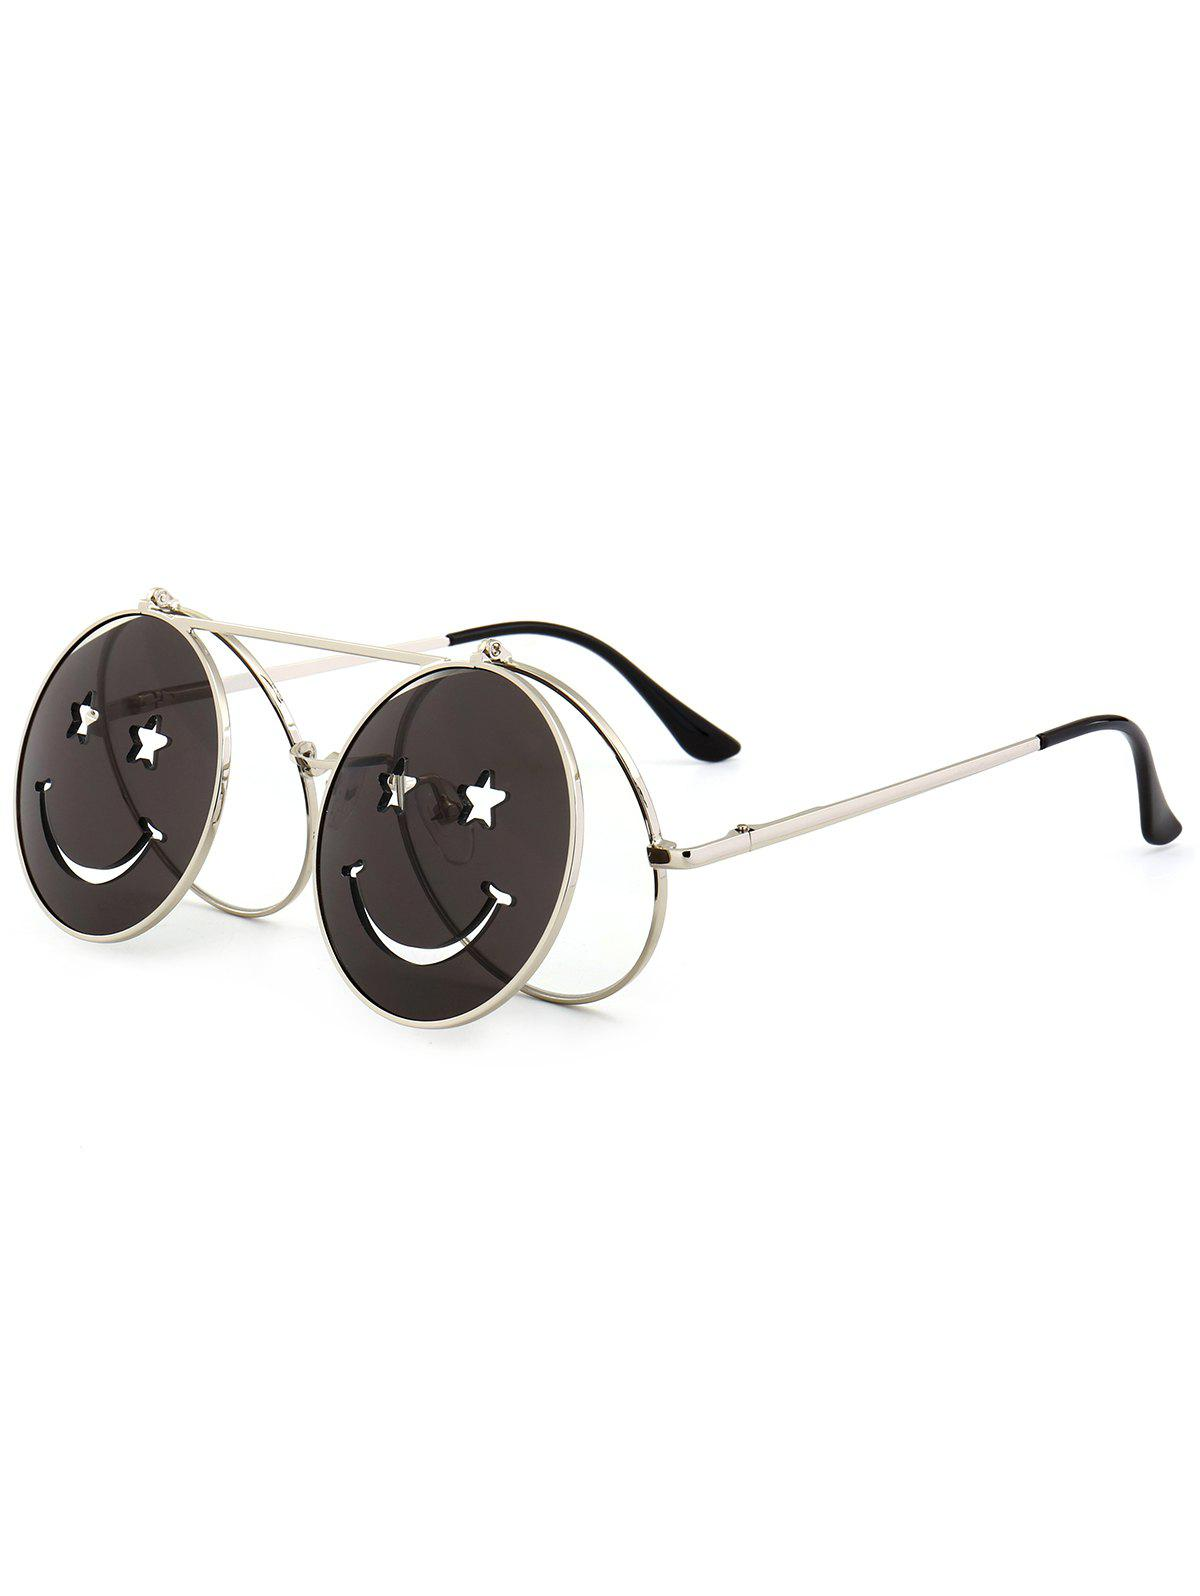 Store Funny Smiling Face Flip-open Round Shape Sunglasses